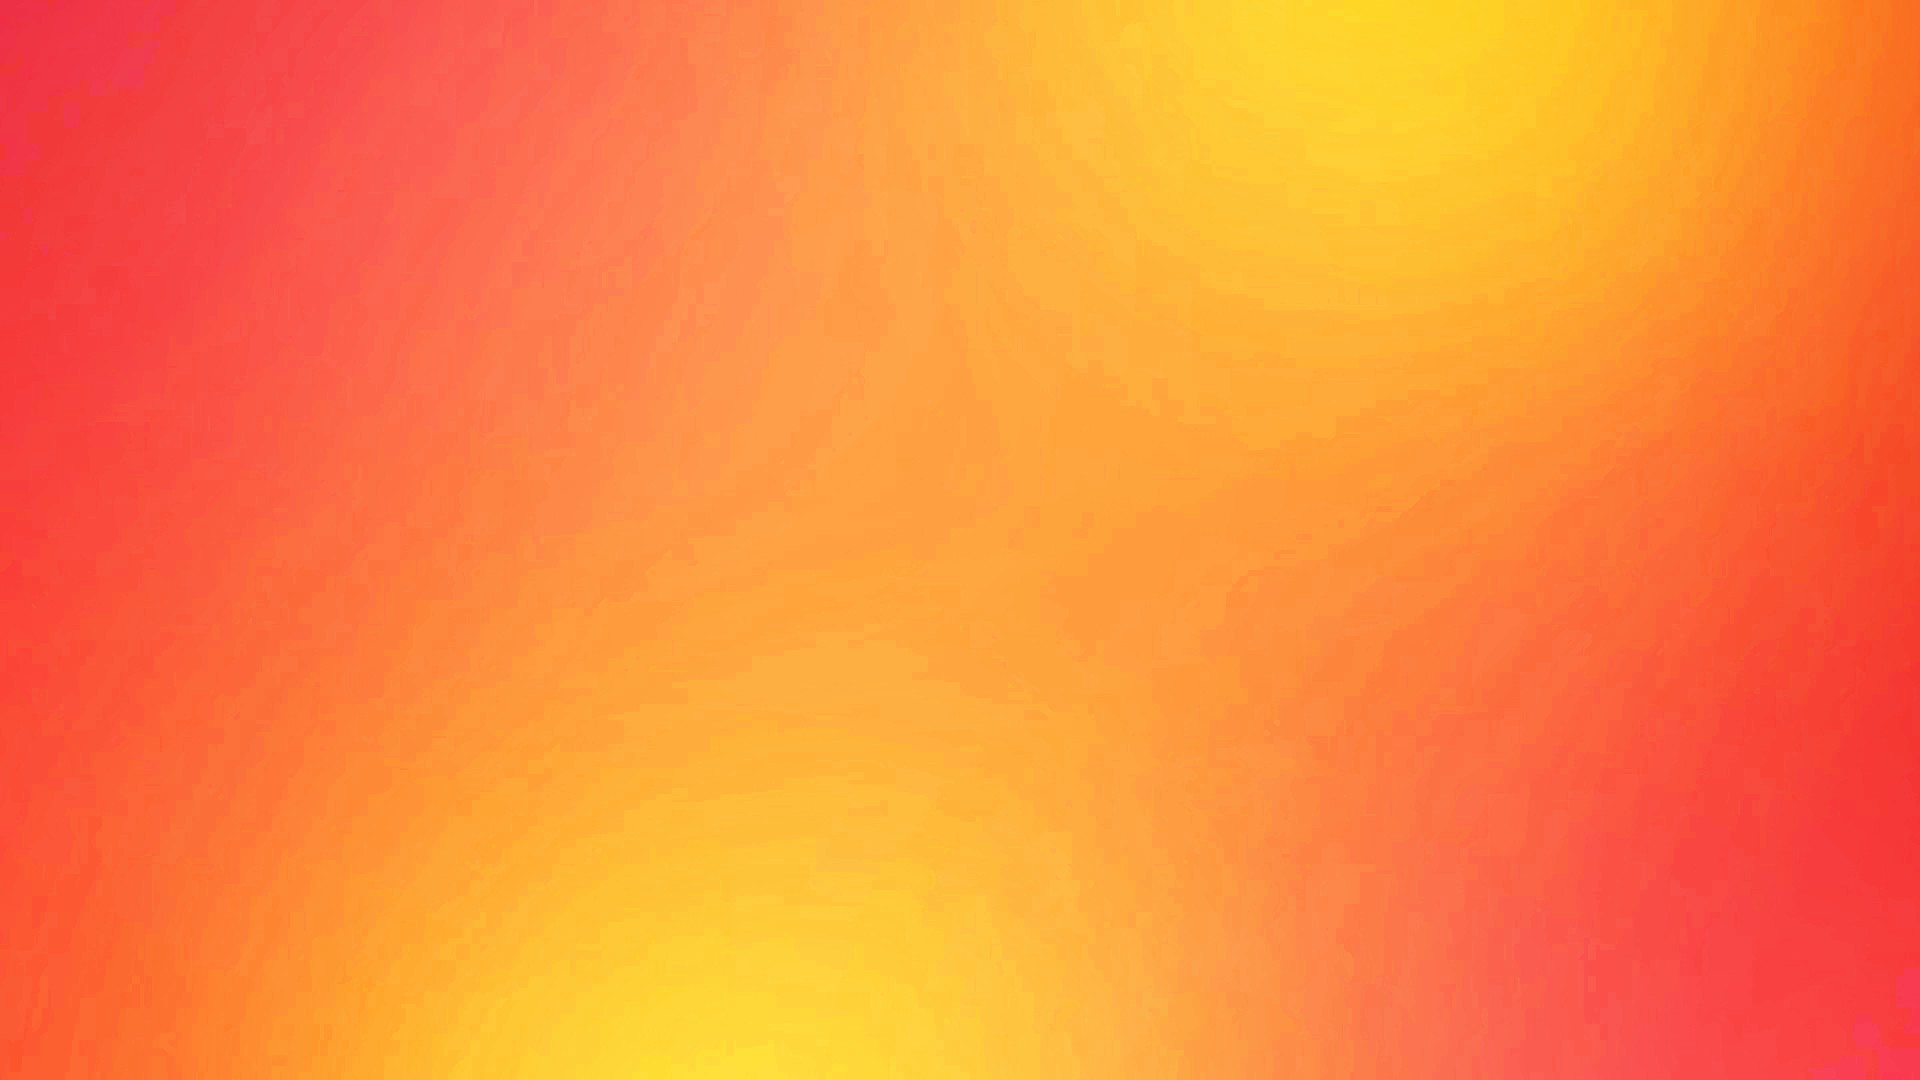 Pink And Yellow Gradient Abstract Wallpaper | Free Images ...